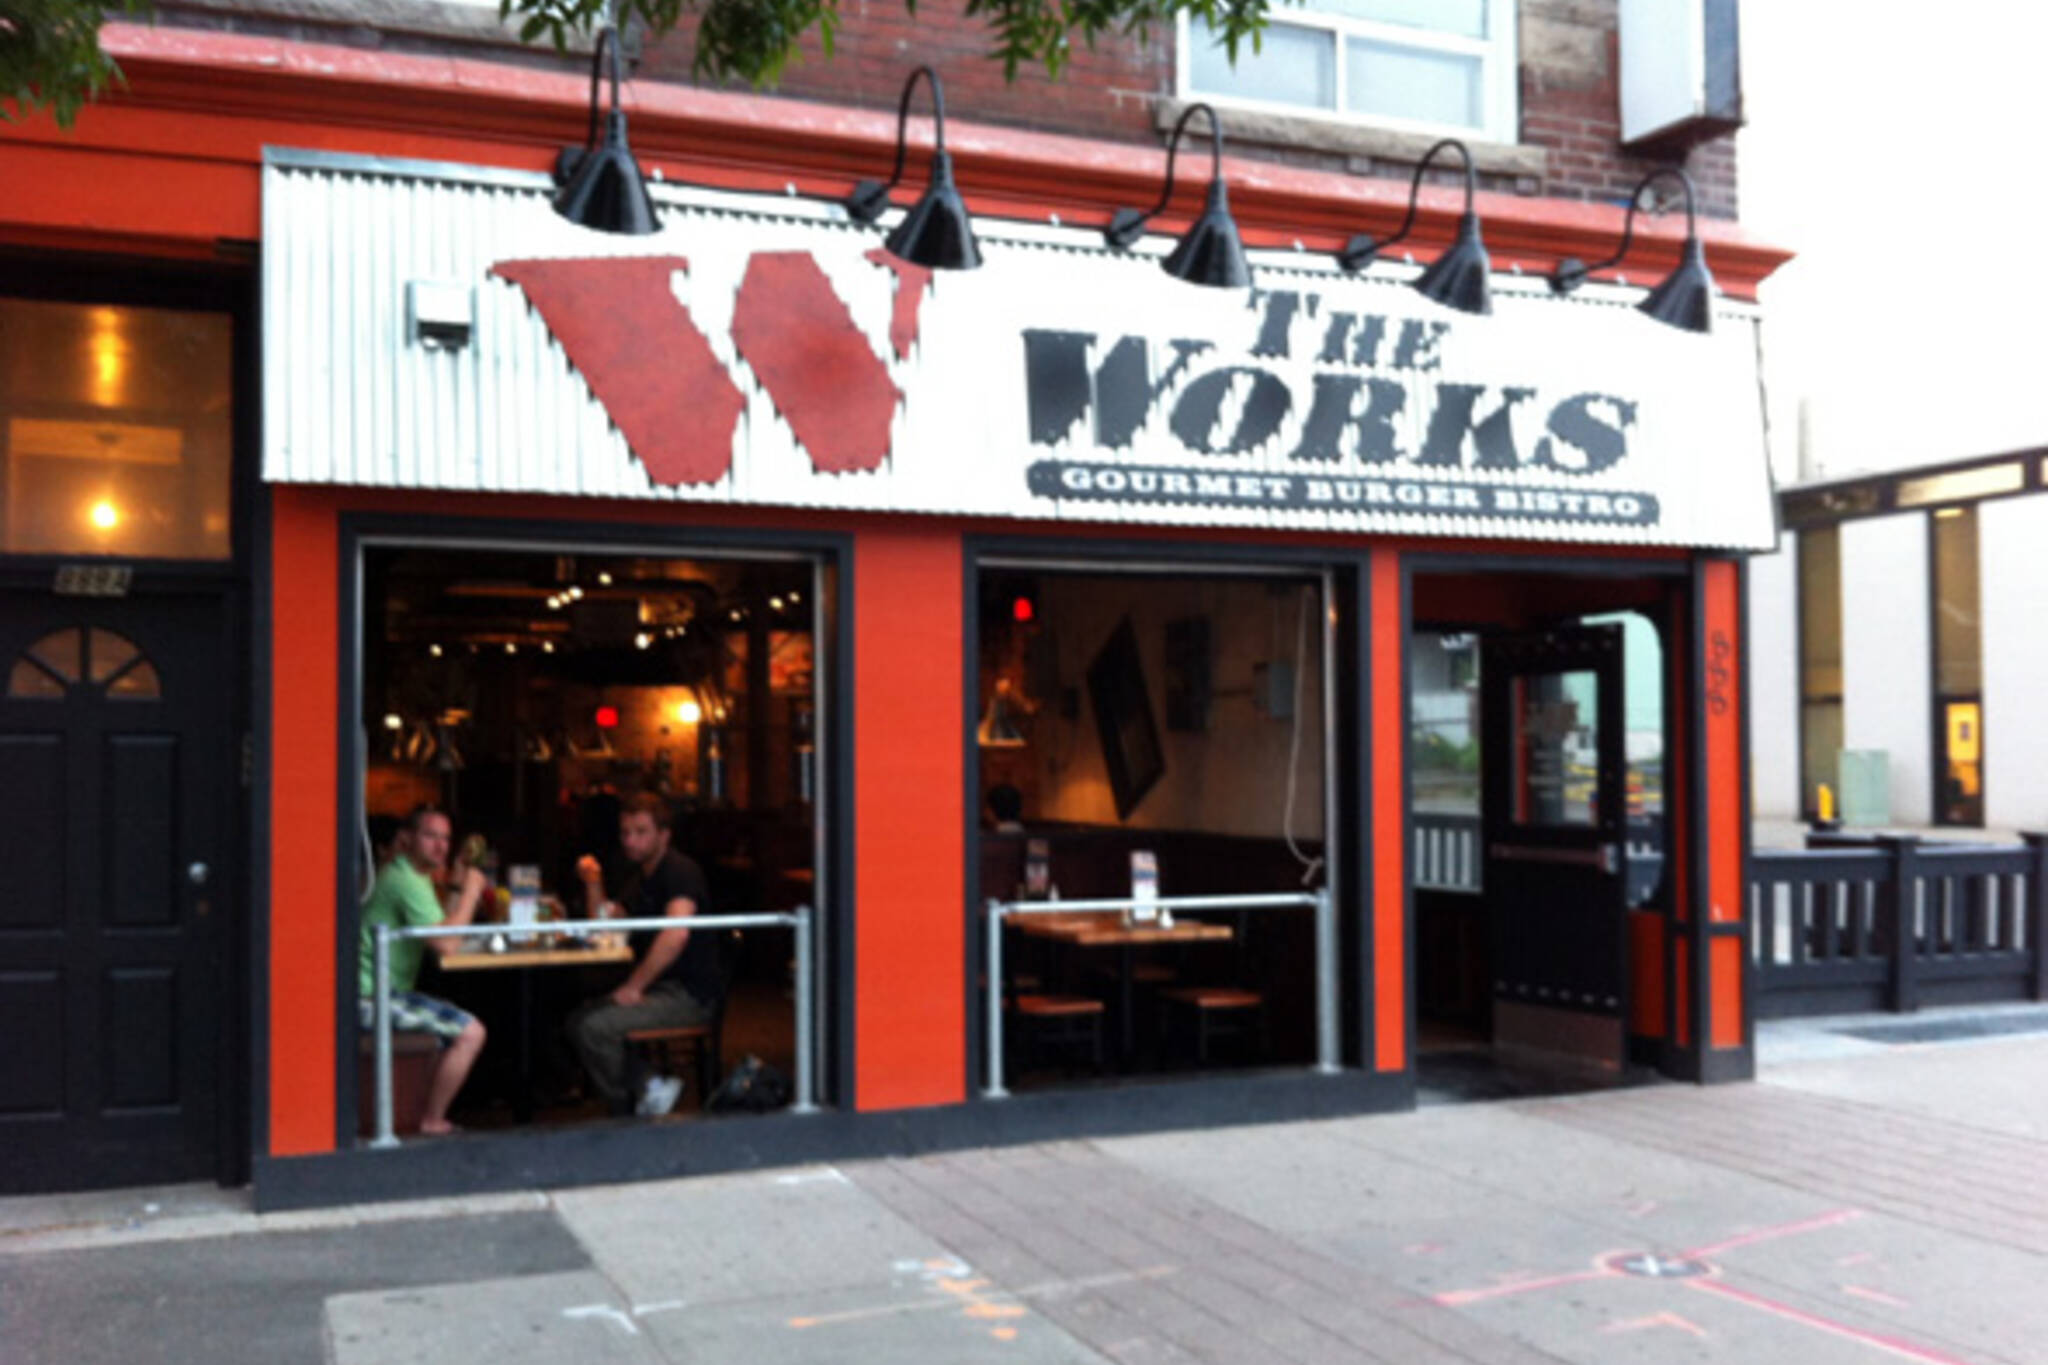 The Works Danforth